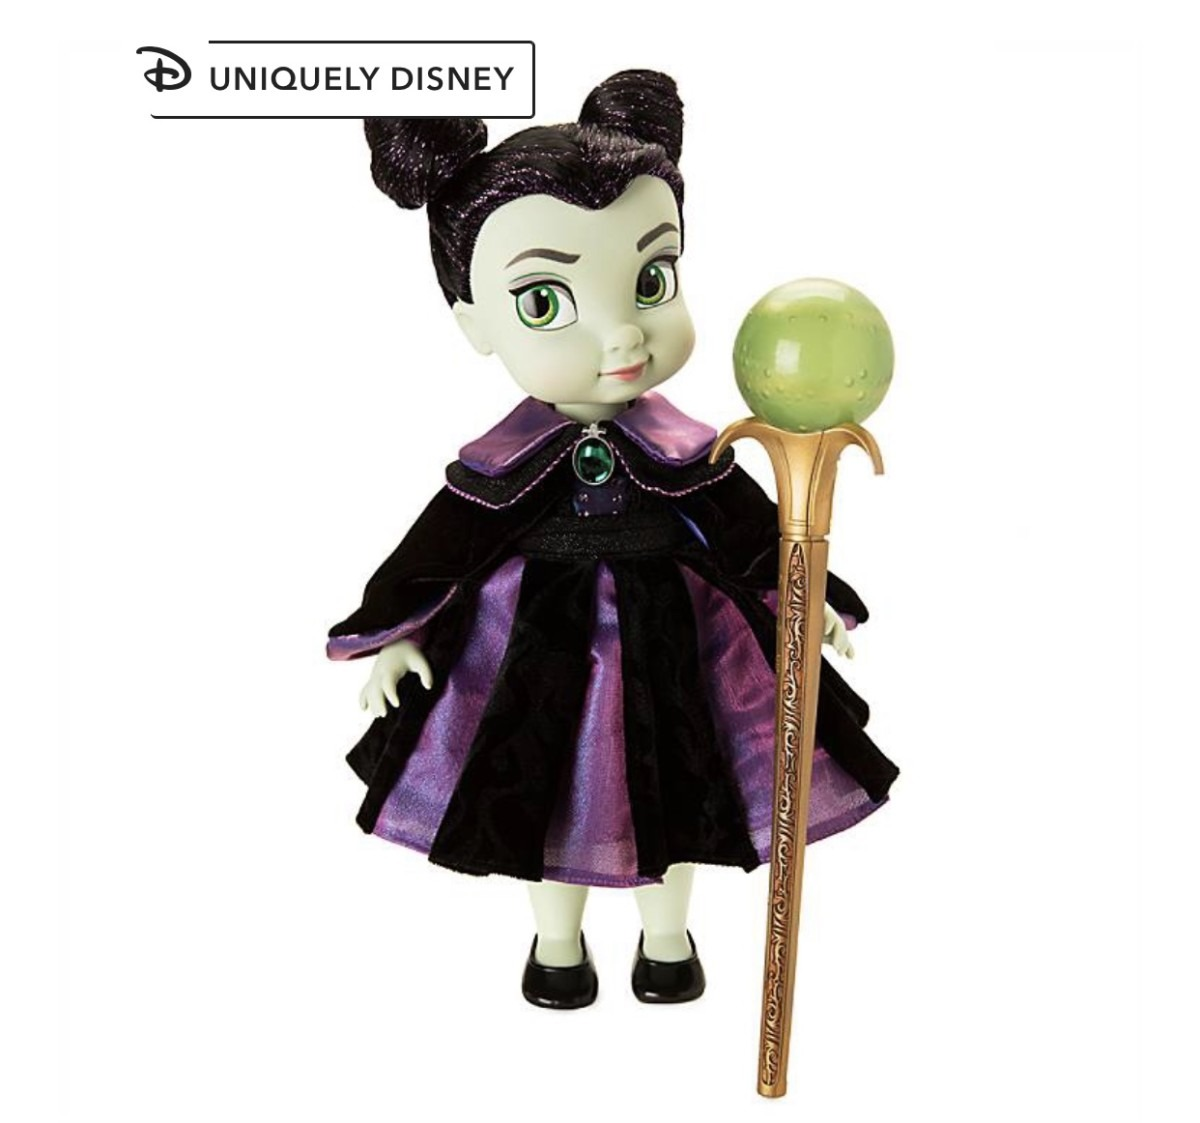 Double Trouble: NEW Maleficent & Ursula Animators' Dolls are Here! 1